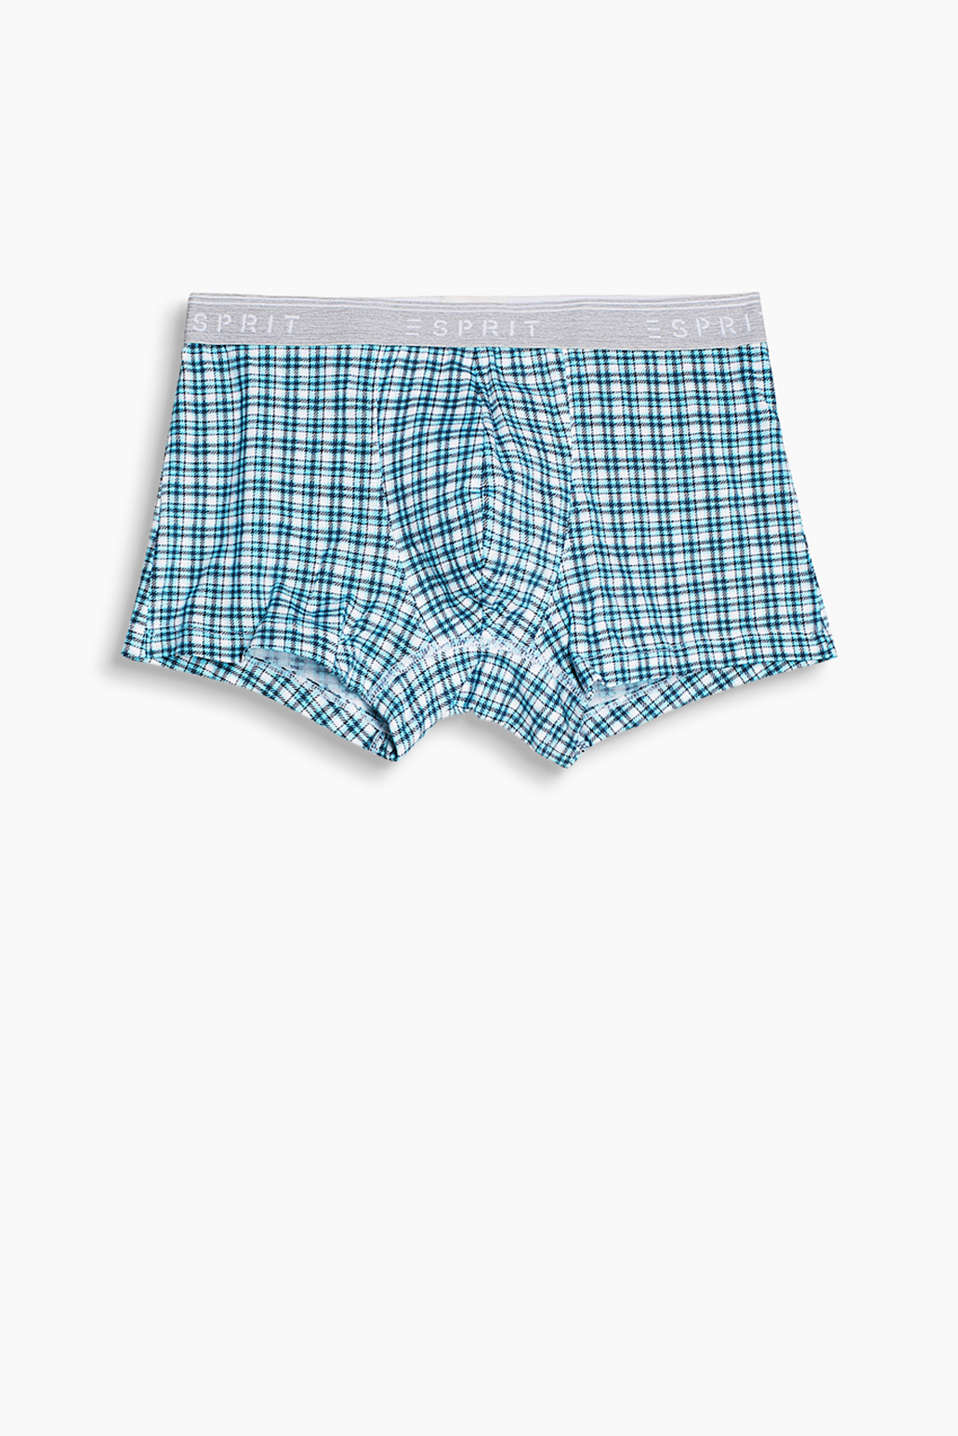 Stretch cotton hipster shorts with a check pattern and logo waistband